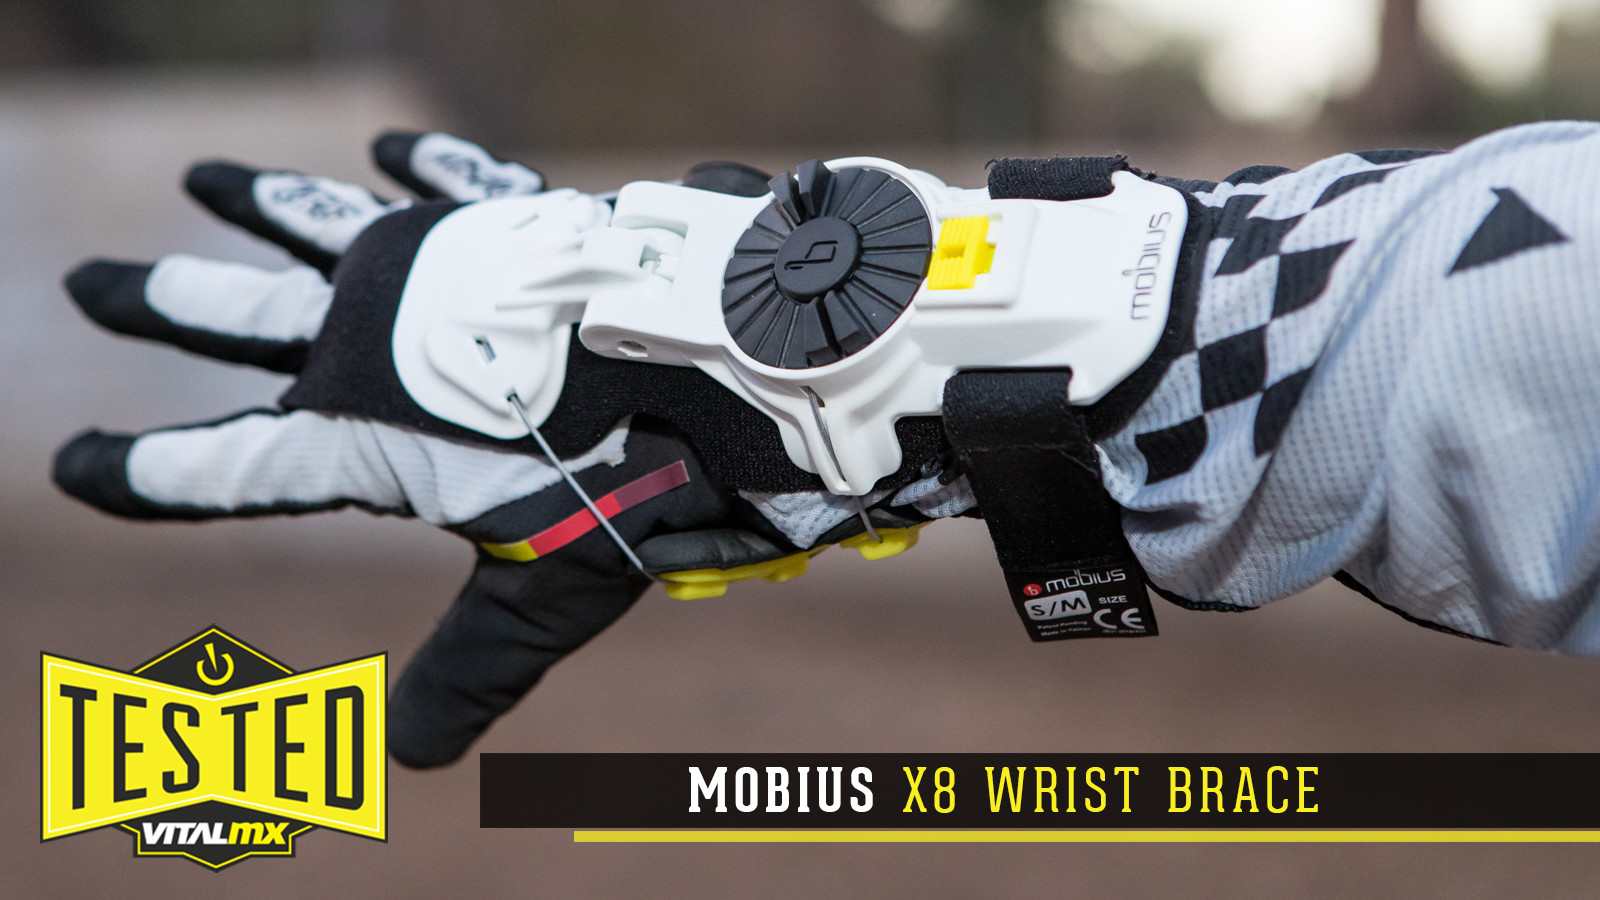 Mobius X8 Wrist Brace Replacement 2 Hole Liner Black